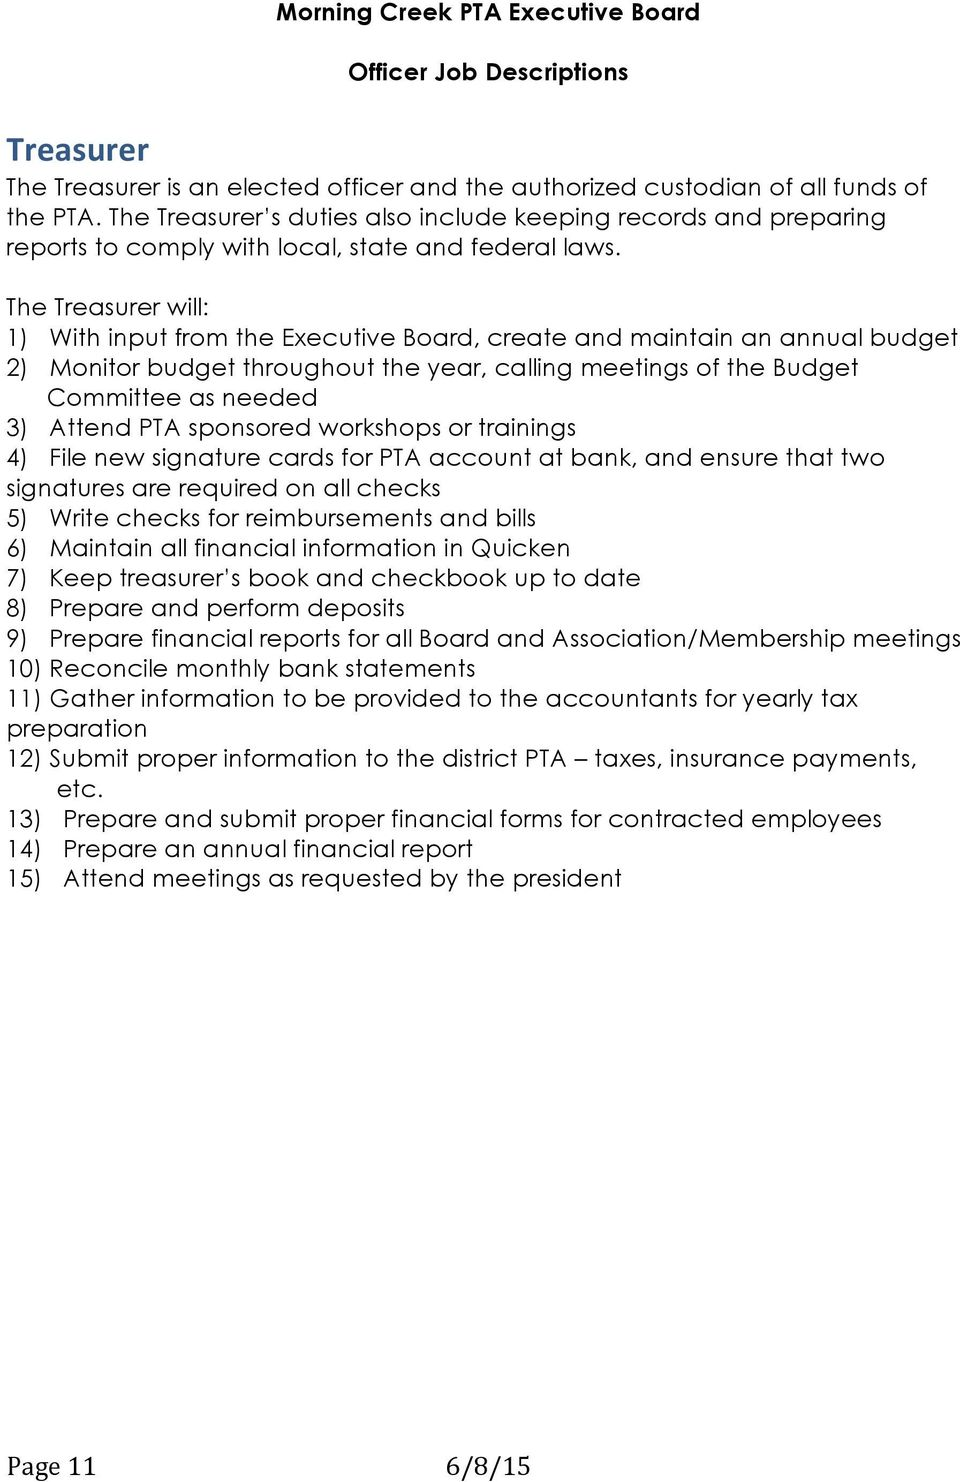 The Treasurer will: 1) With input from the Executive Board, create and maintain an annual budget 2) Monitor budget throughout the year, calling meetings of the Budget Committee as needed 3) Attend